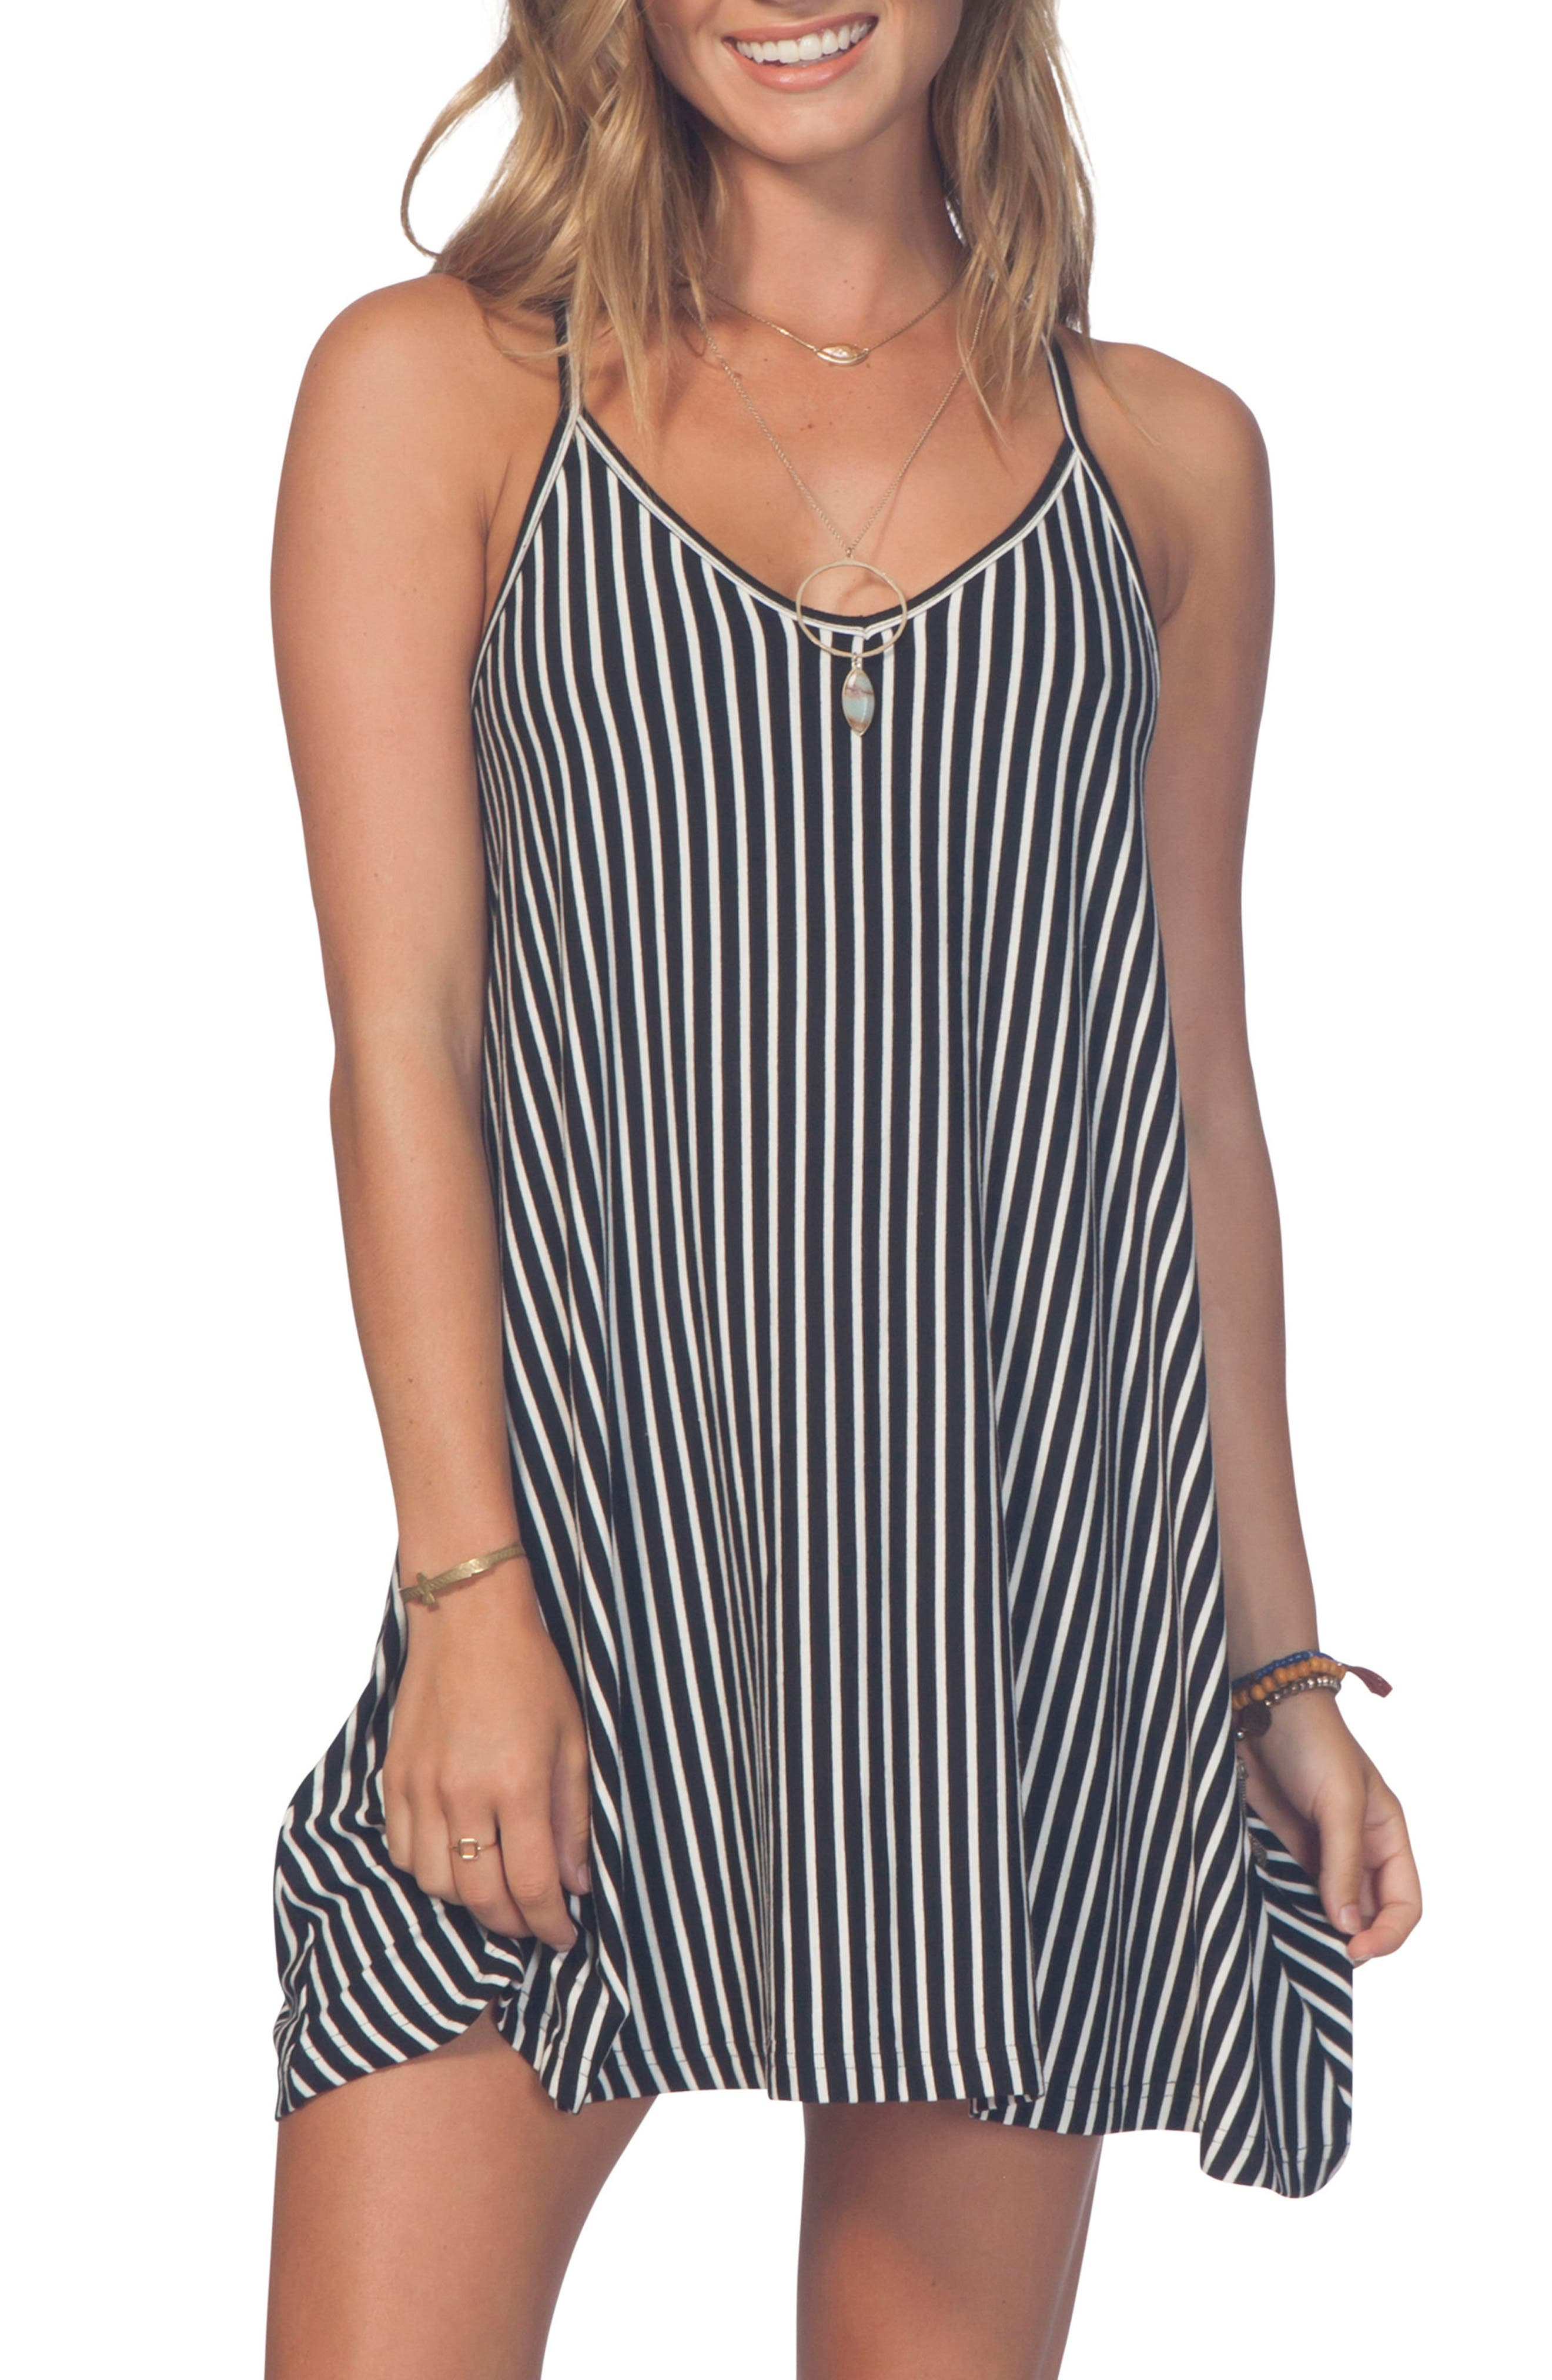 Alternate Image 1 Selected - Rip Curl Day Tripper Strappy Swing Dress